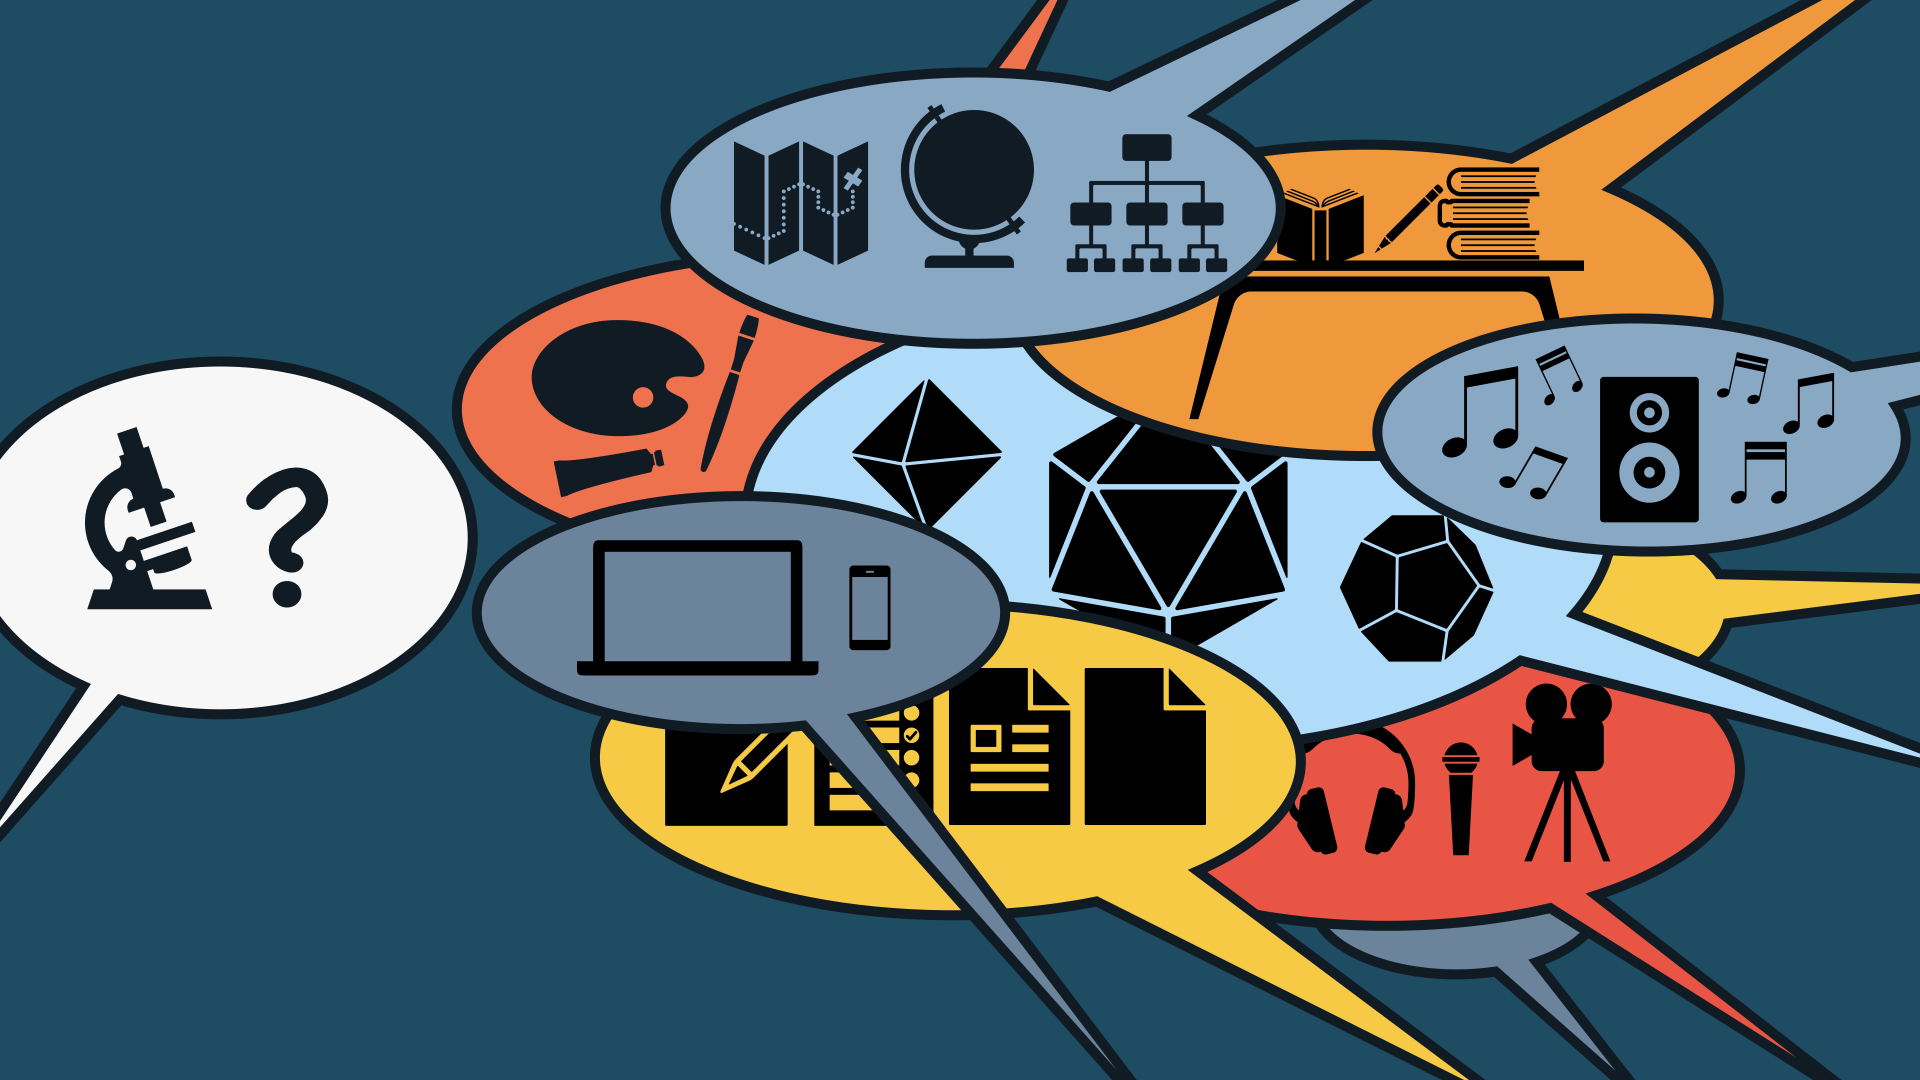 A speech bubble containing a microscope and a question mark on the left side of the frame, and a lot of speech bubbles from the right side of the frame answering with icons of dice, tables, books, documents of multiple types, music, and recording equipment.